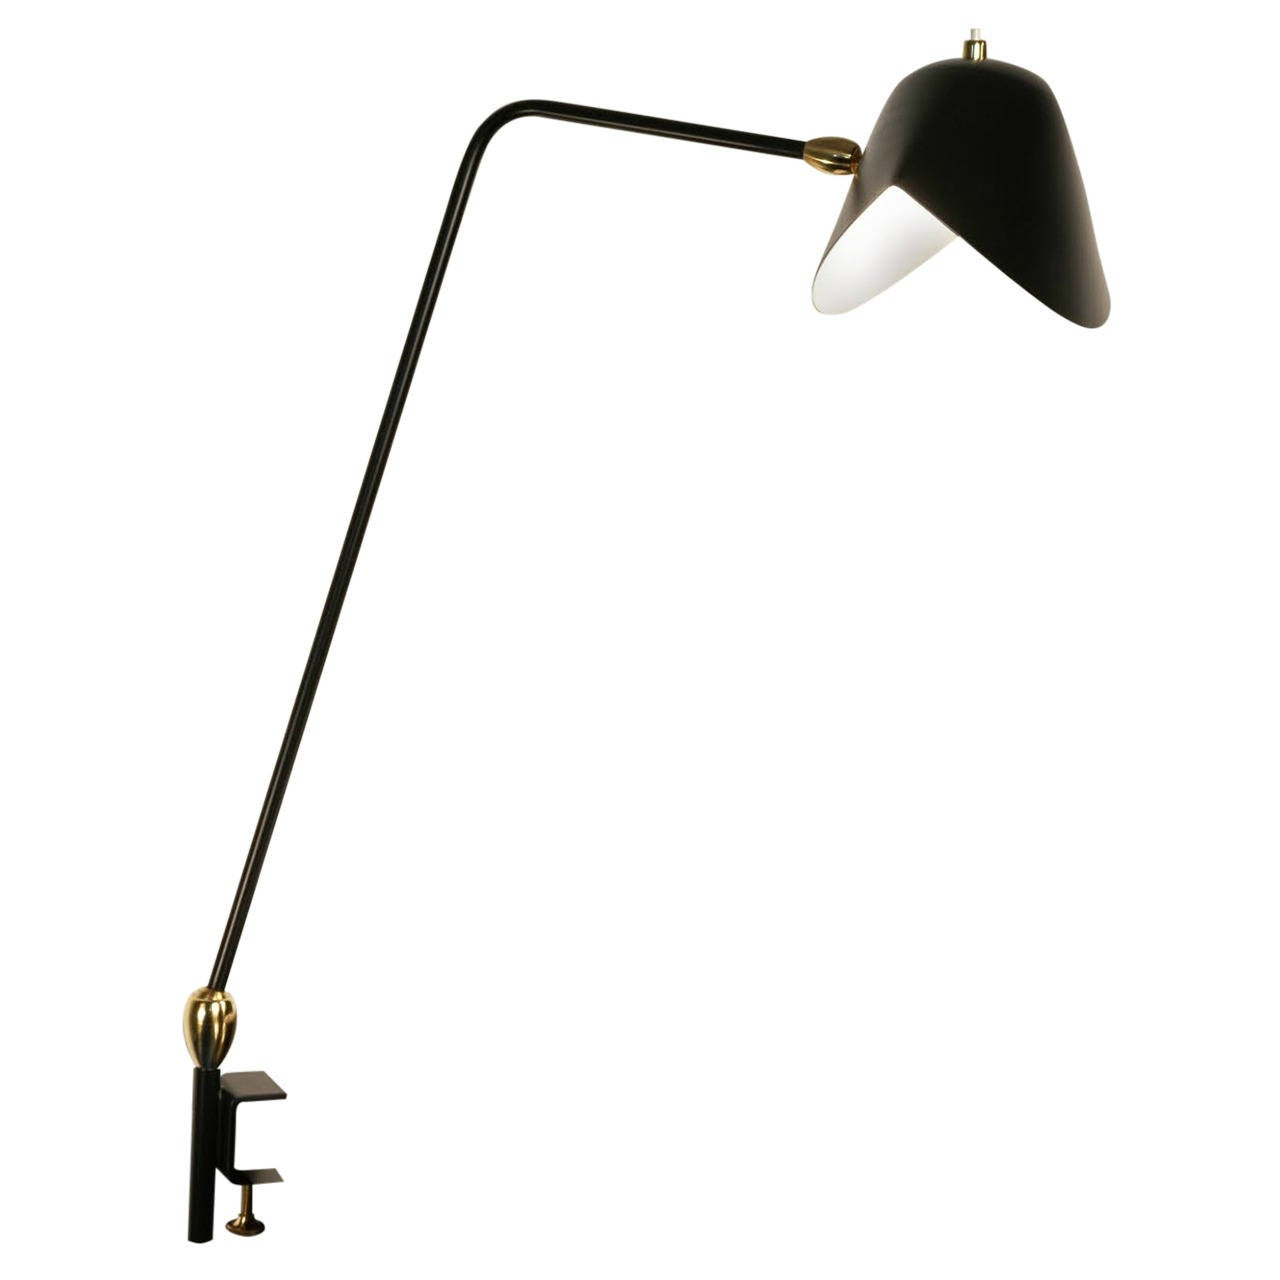 Agrafee Desk Lamp, Double Swivel, by Serge Mouille